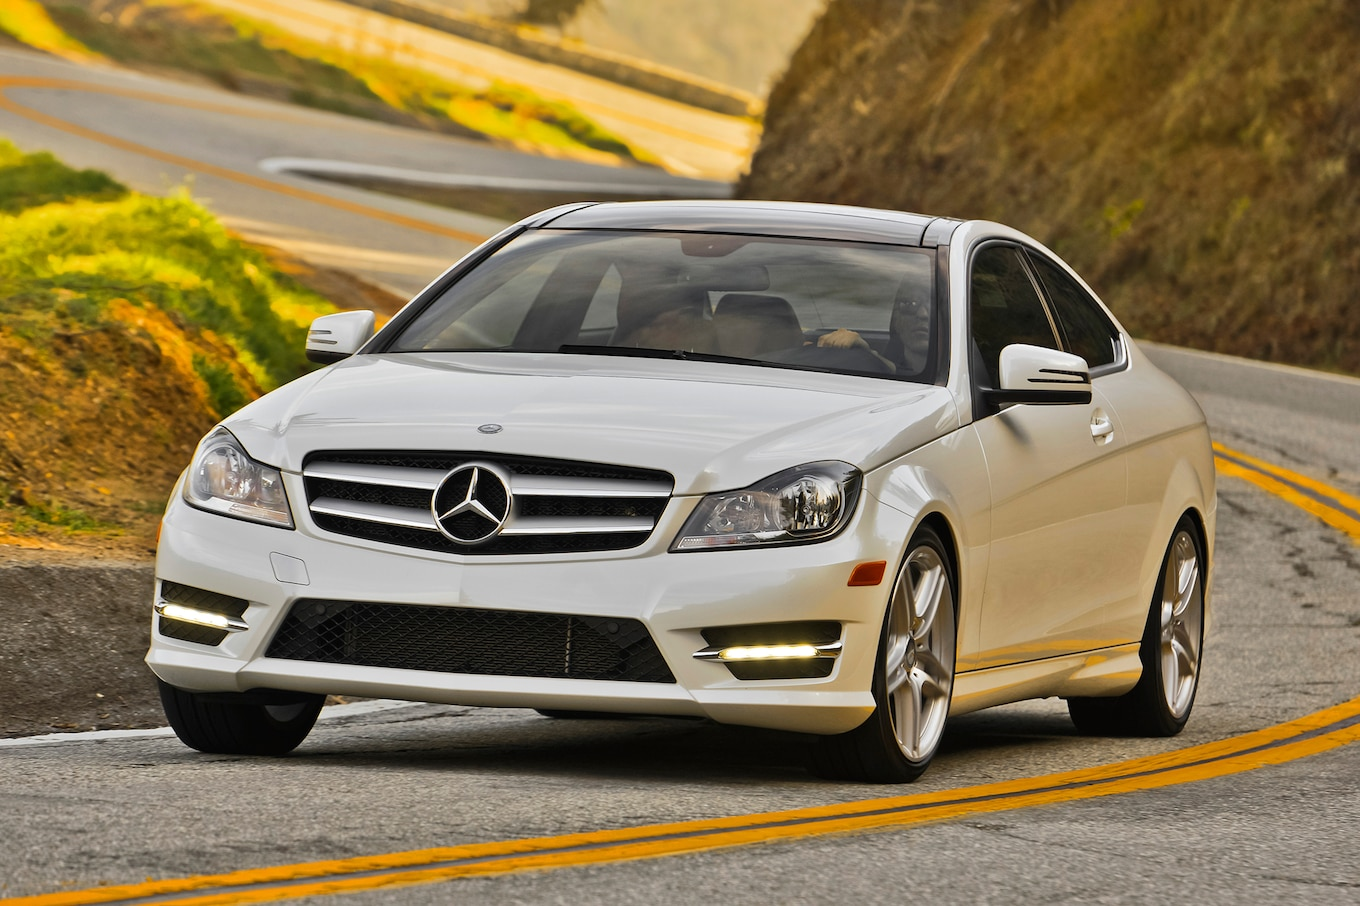 2013 Mercedesbenz C350 Sedan Sport Package Plus Front Review 2009 Mercedes C300 Fuse Box Location Cclass Reviews And Rating Motor Trend